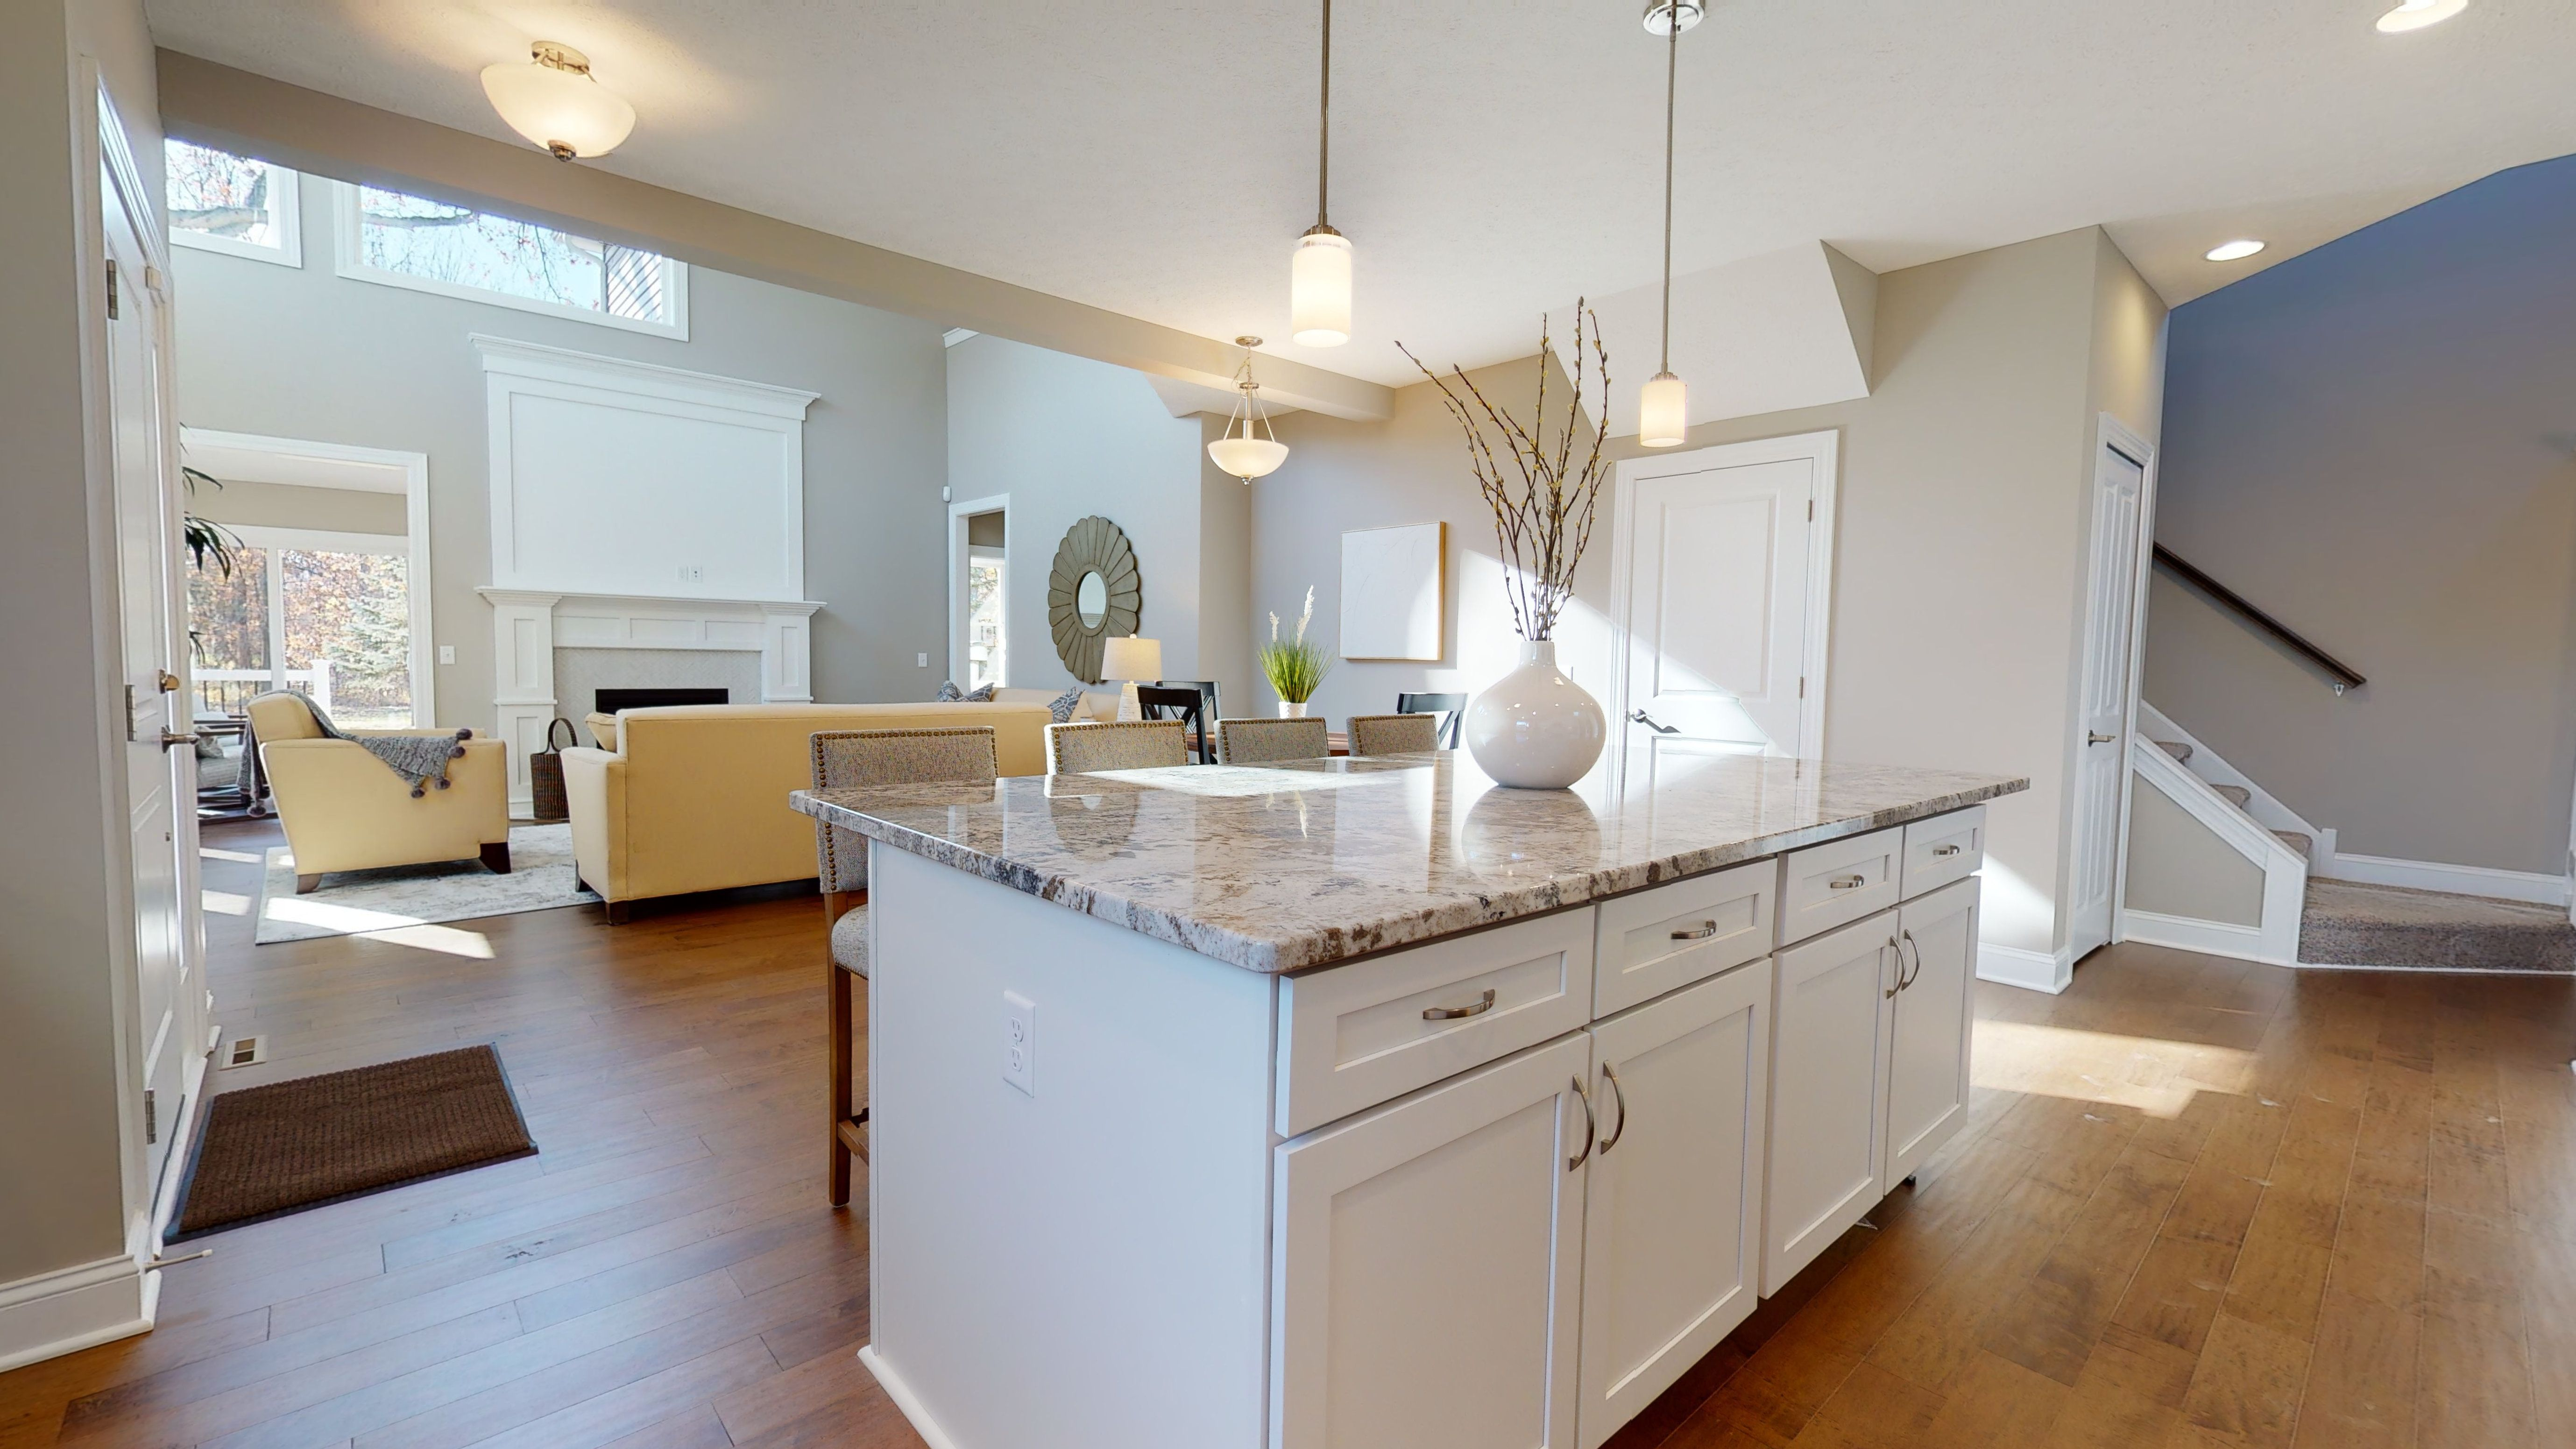 Kitchen featured in The Emilia By Parkview Custom Homes  in Cleveland, OH